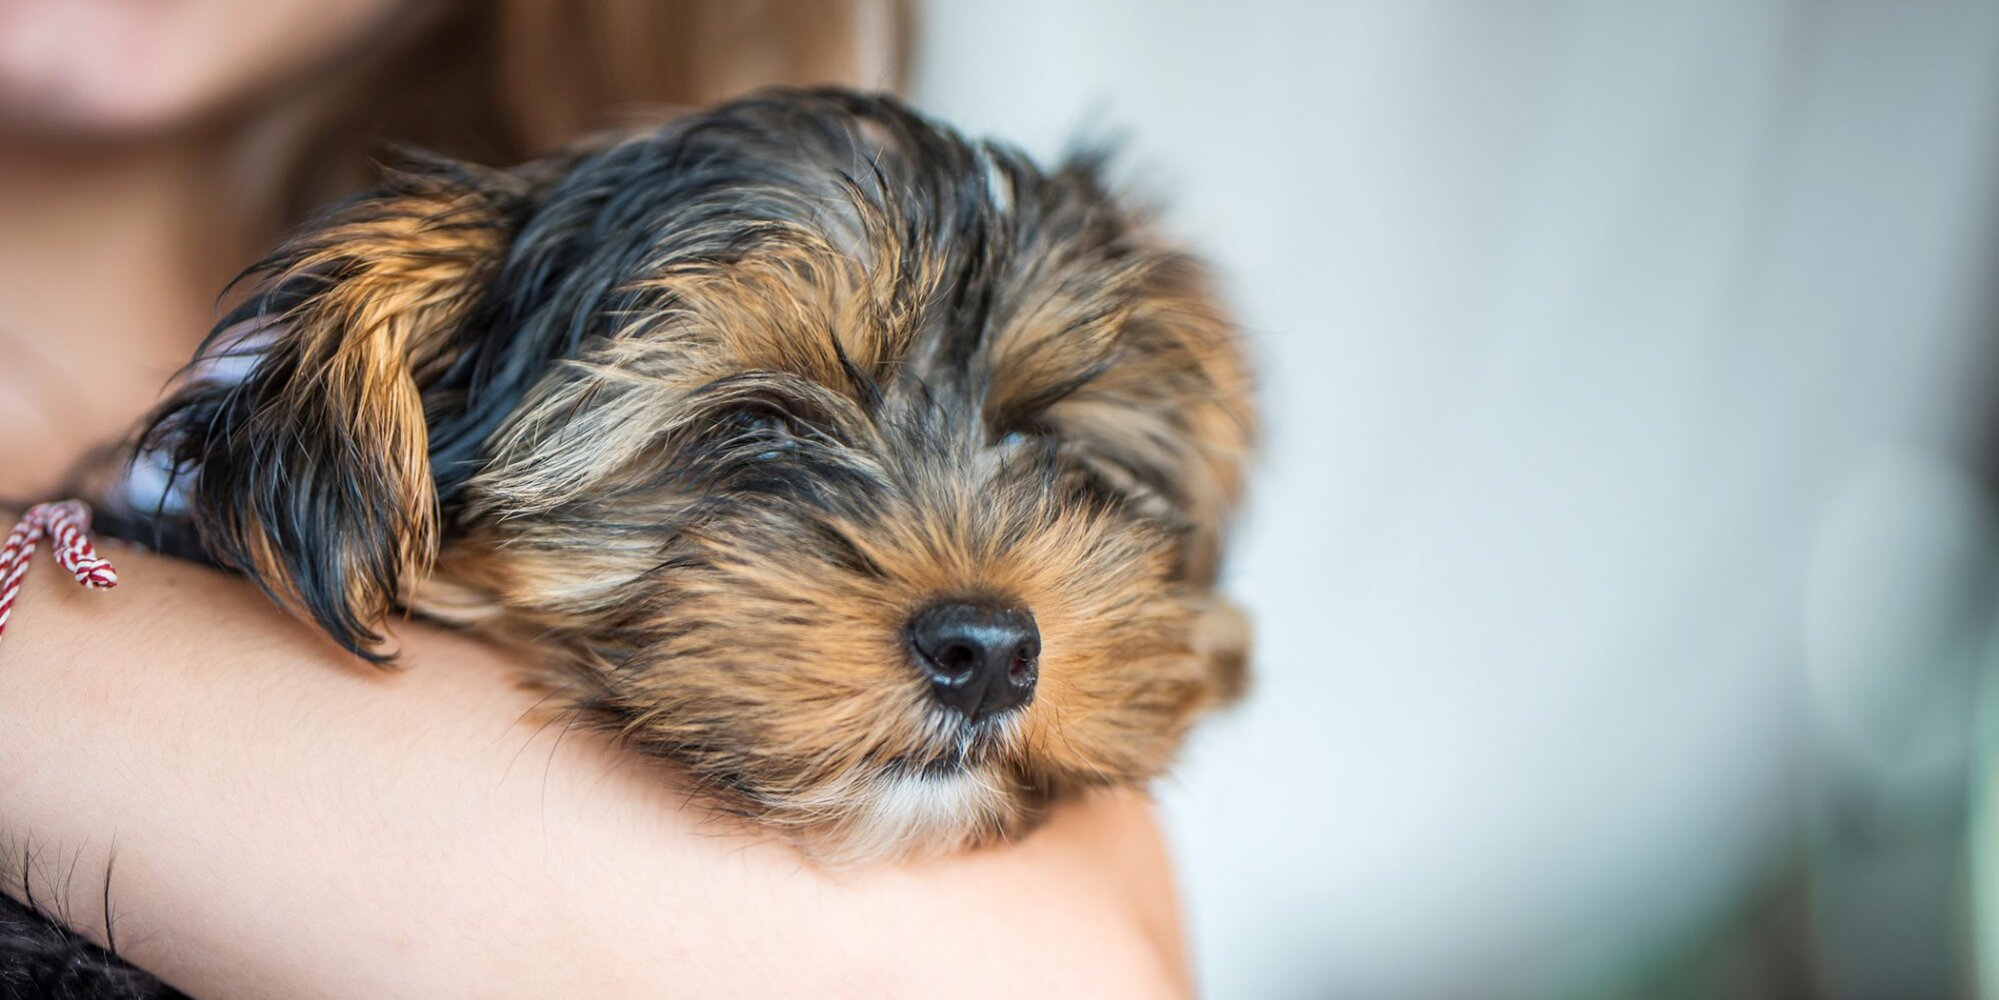 Everything You'll Need When Bringing Home a New Puppy